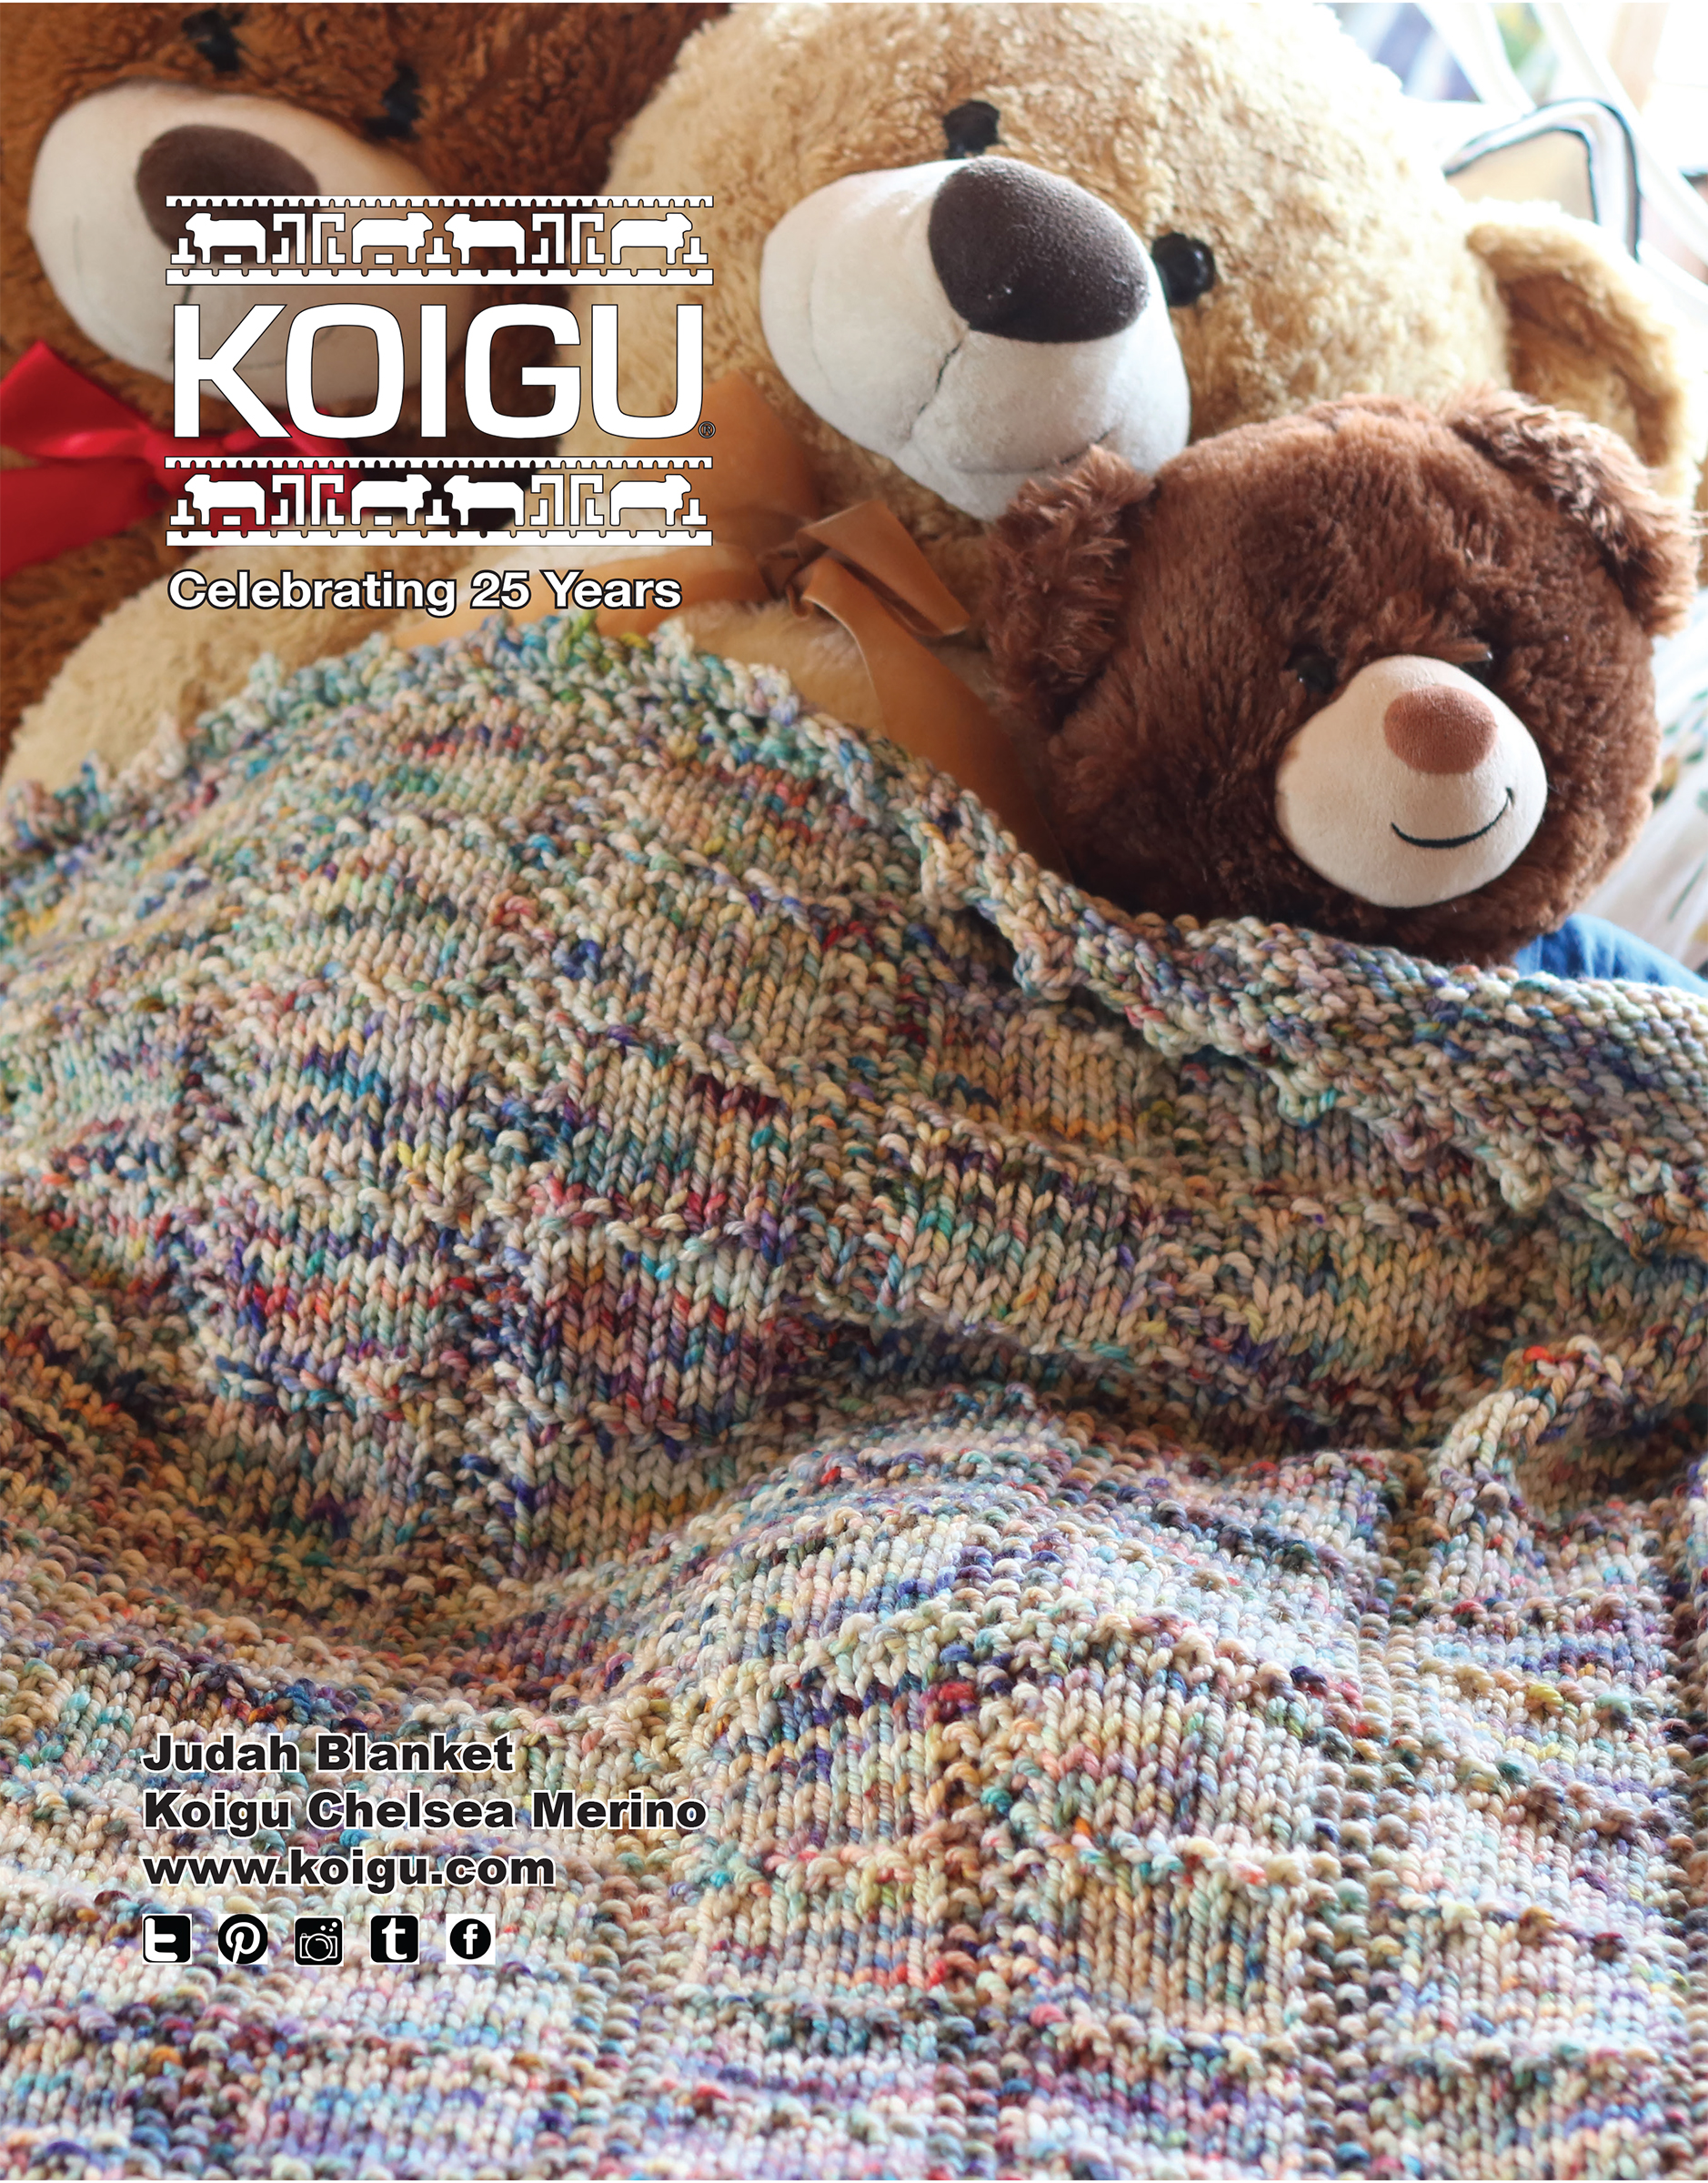 knit simple holiday 2017 revised 8.5 x11.jpg